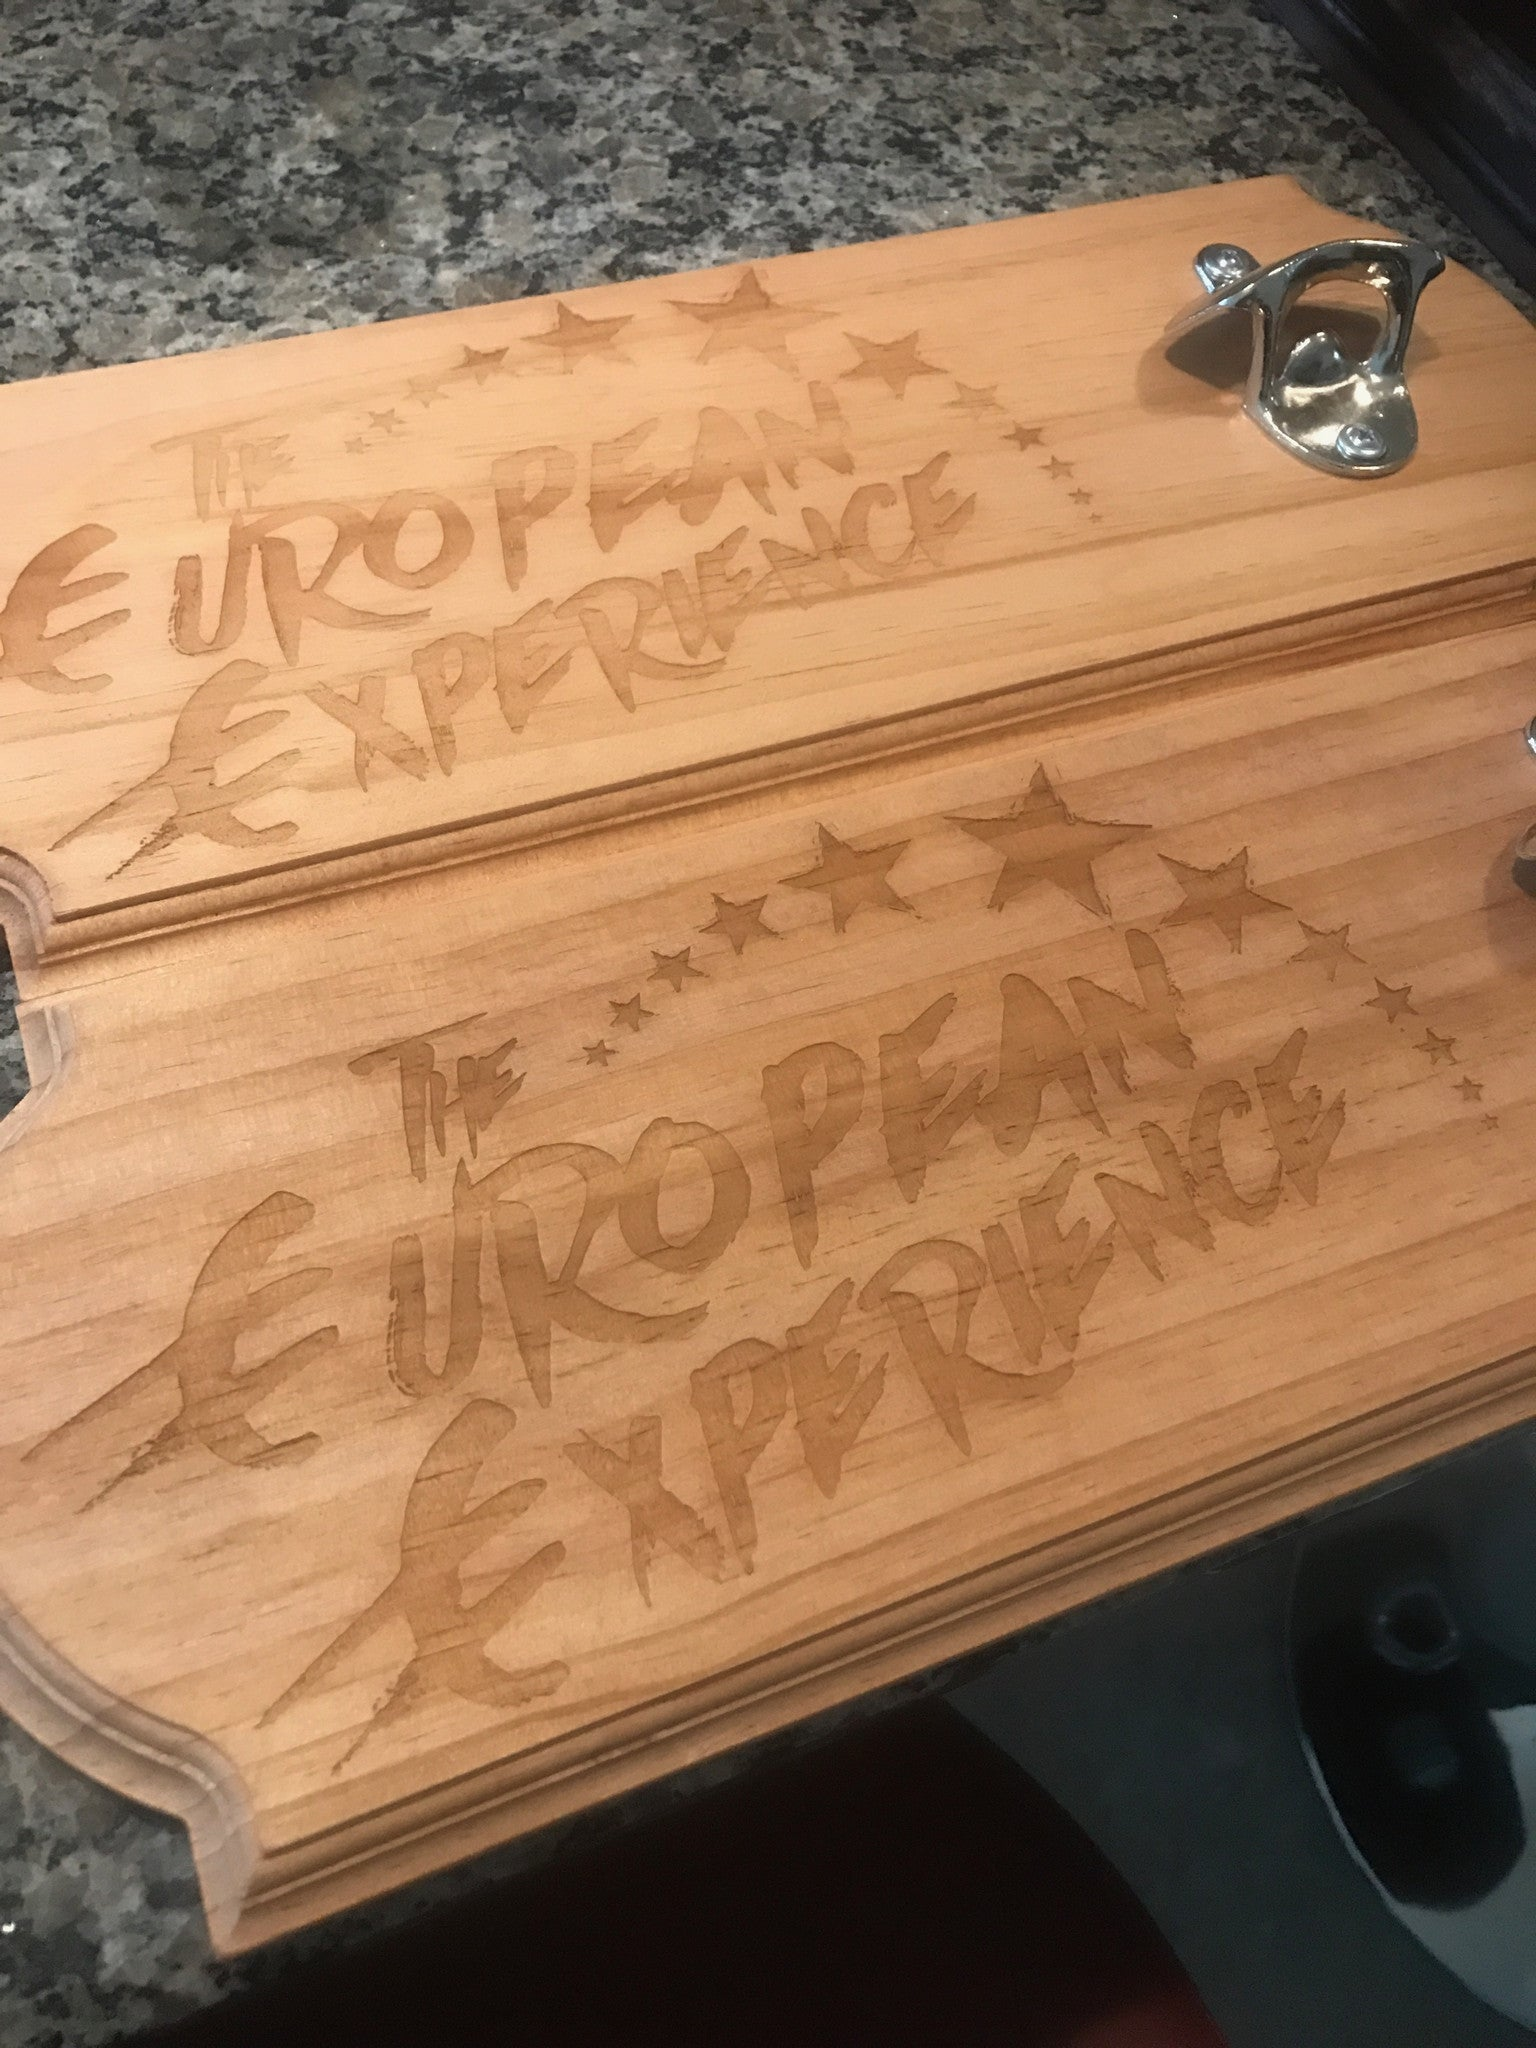 European Experience Bottle Opener